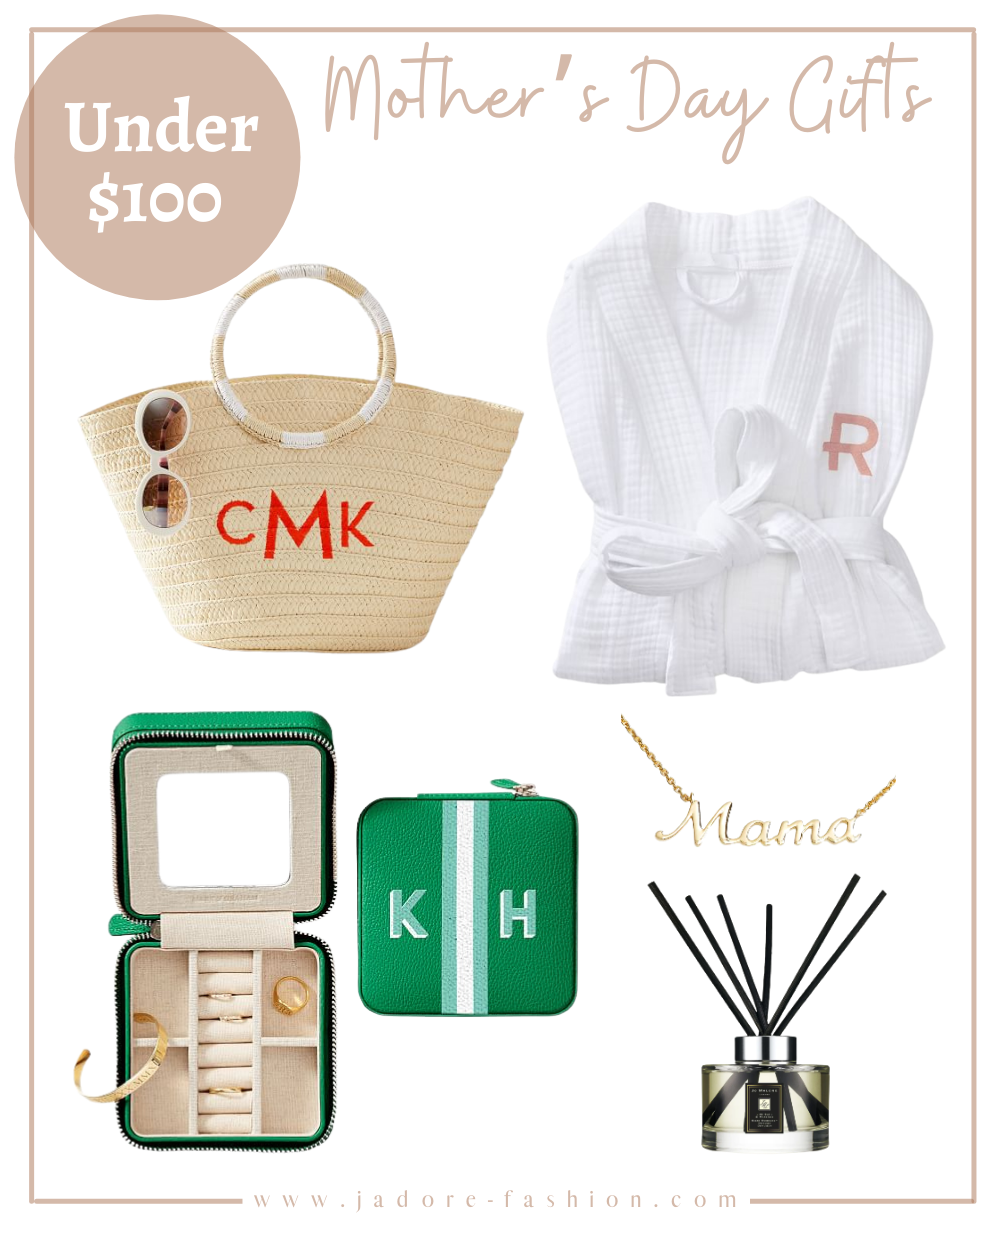 Stella-adewunmi-of-jadore-fashion-blog-share-last-minute-gifts-for-moms